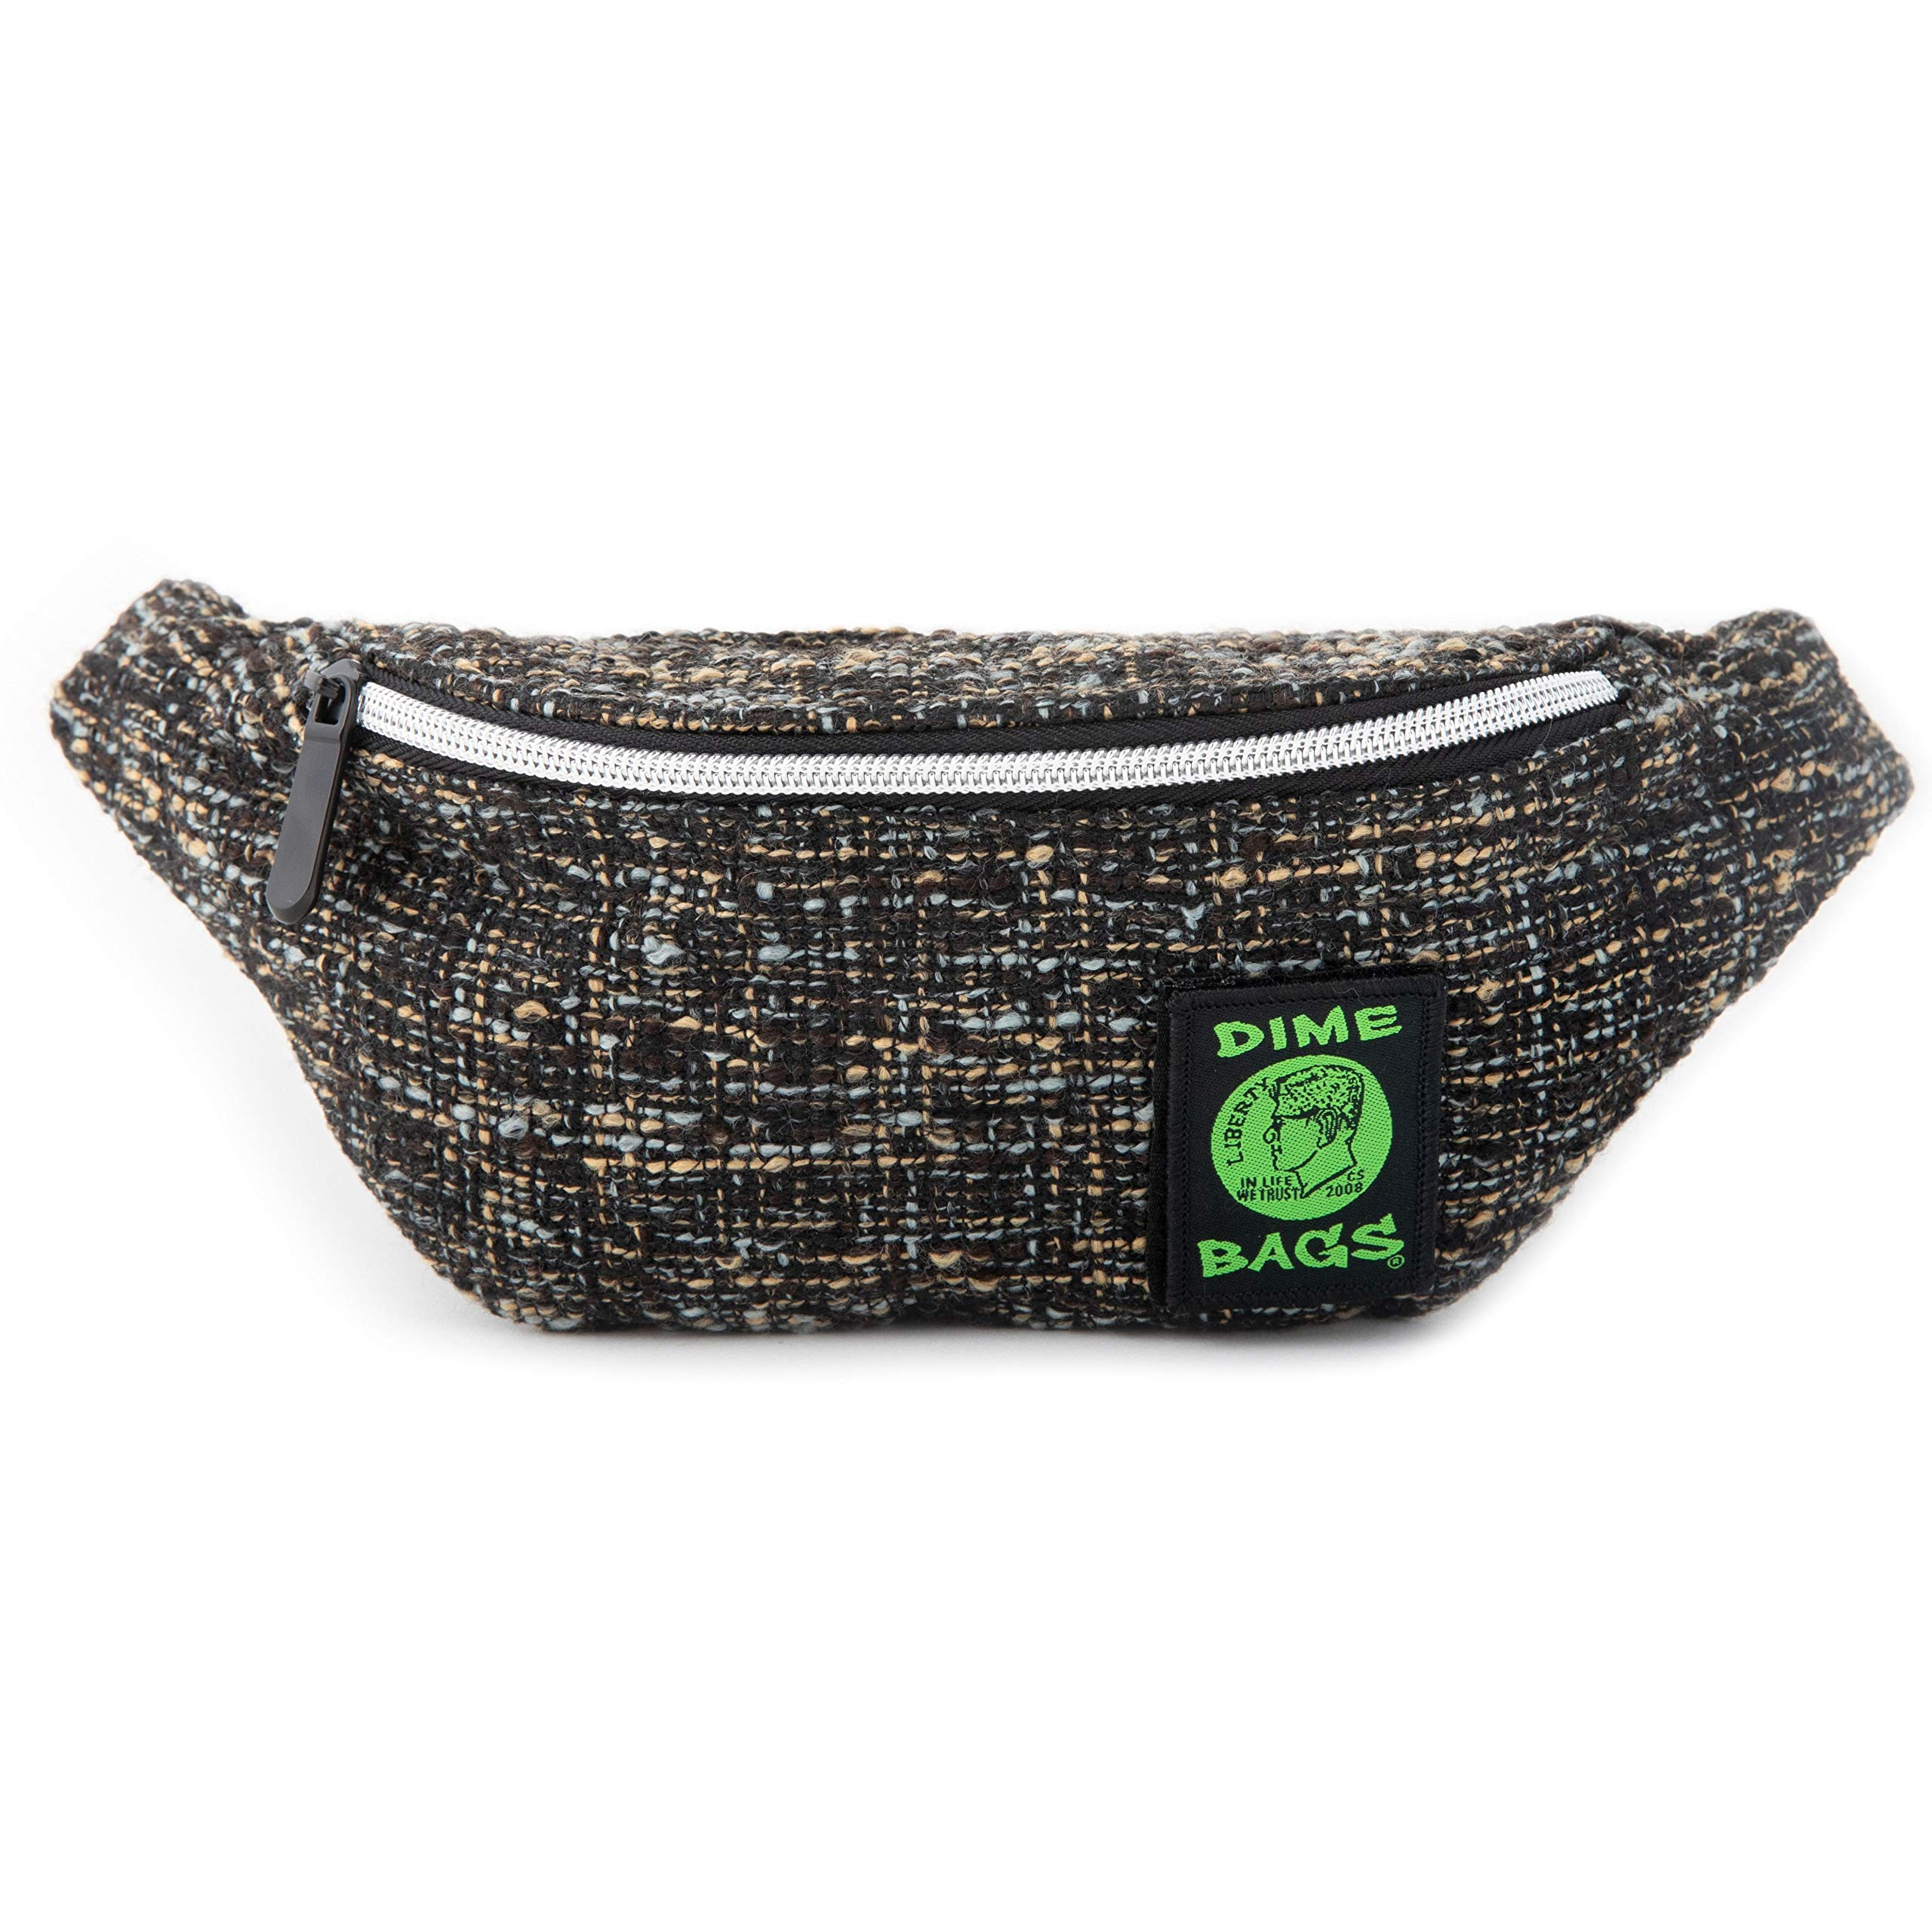 Dime Bags Stash Pack   Fanny Pack for Hiking, Running, and Workout   Hip Travel Bag for Men and Women   Hemp Hip Pack with Belt   Our Fanny Packs fit iPhone and Galaxy (Concrete)